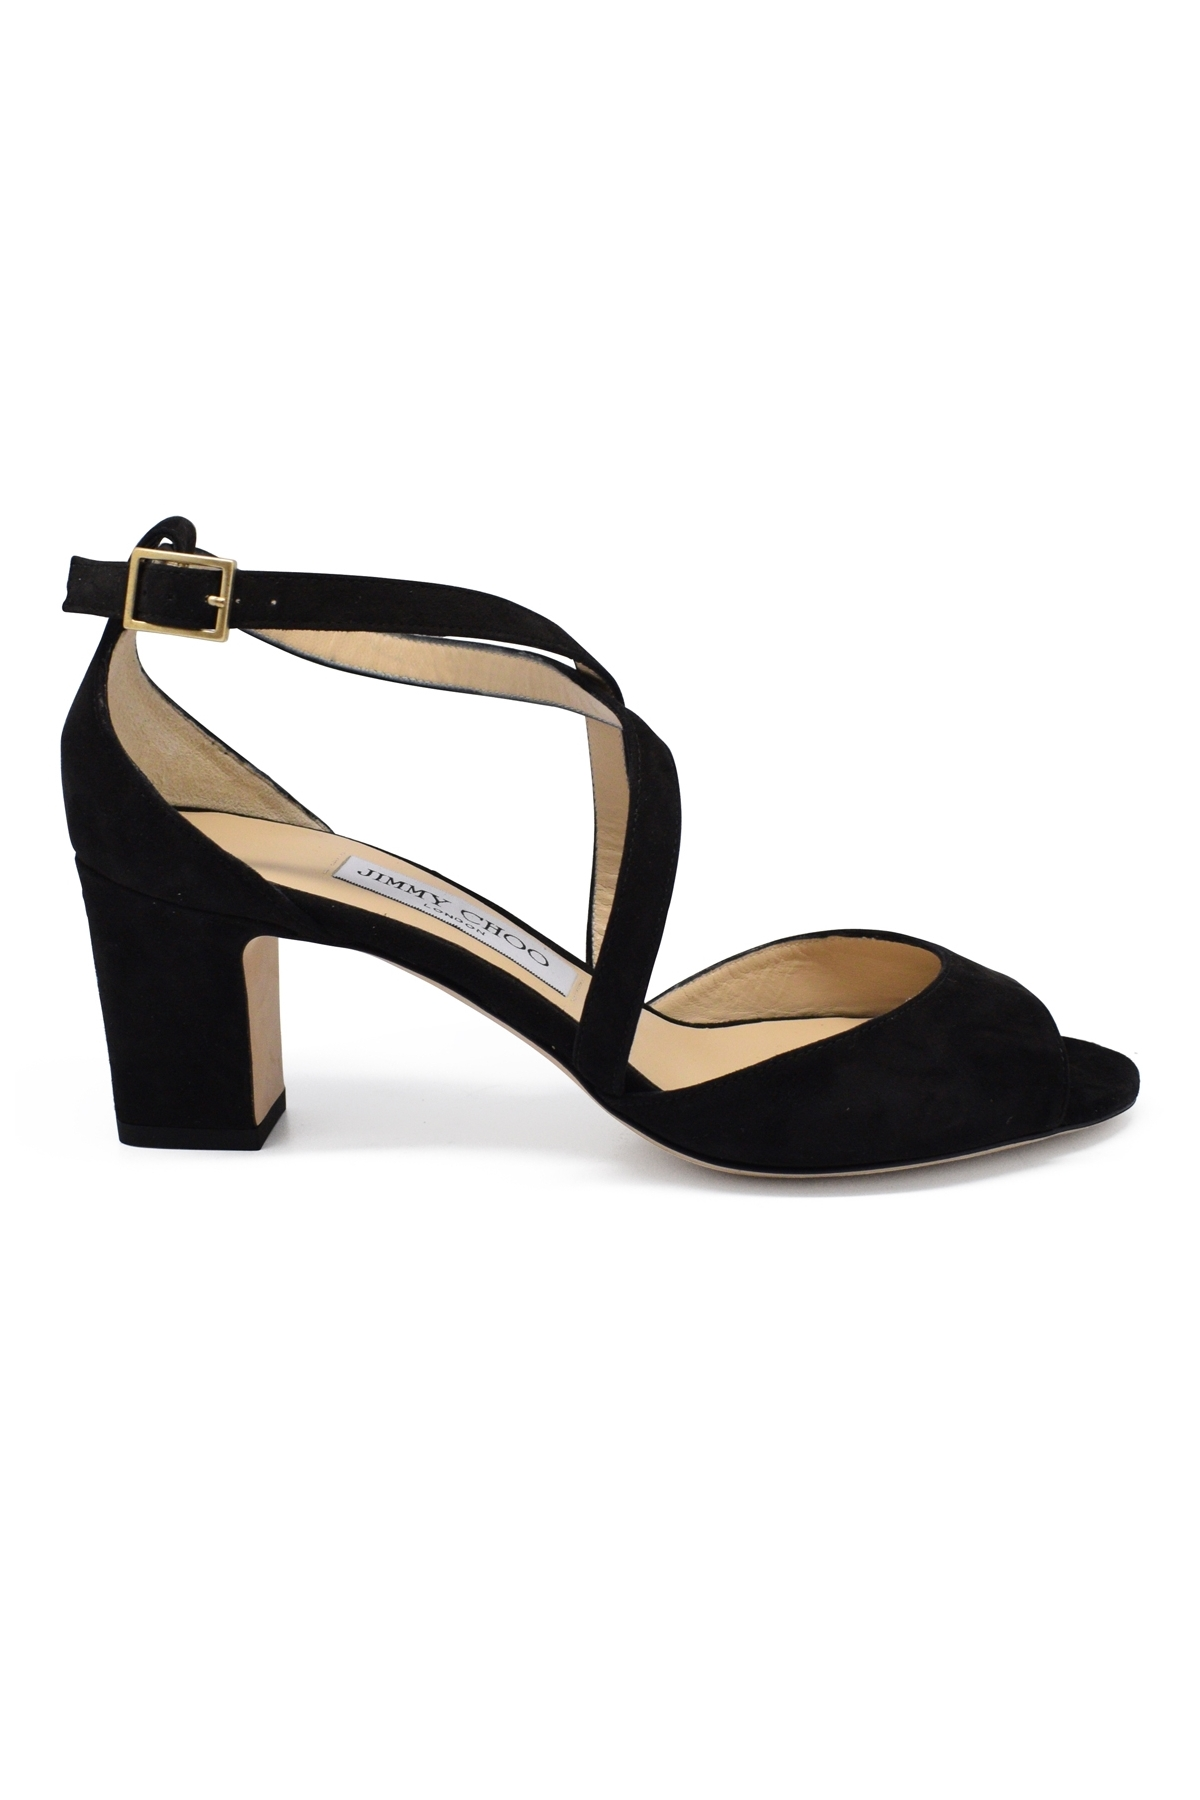 Jimmy Choo Carrie 65 sandals in black suede with mid-high heel and open toe, crossed bridles at the front and buckled ankle stra